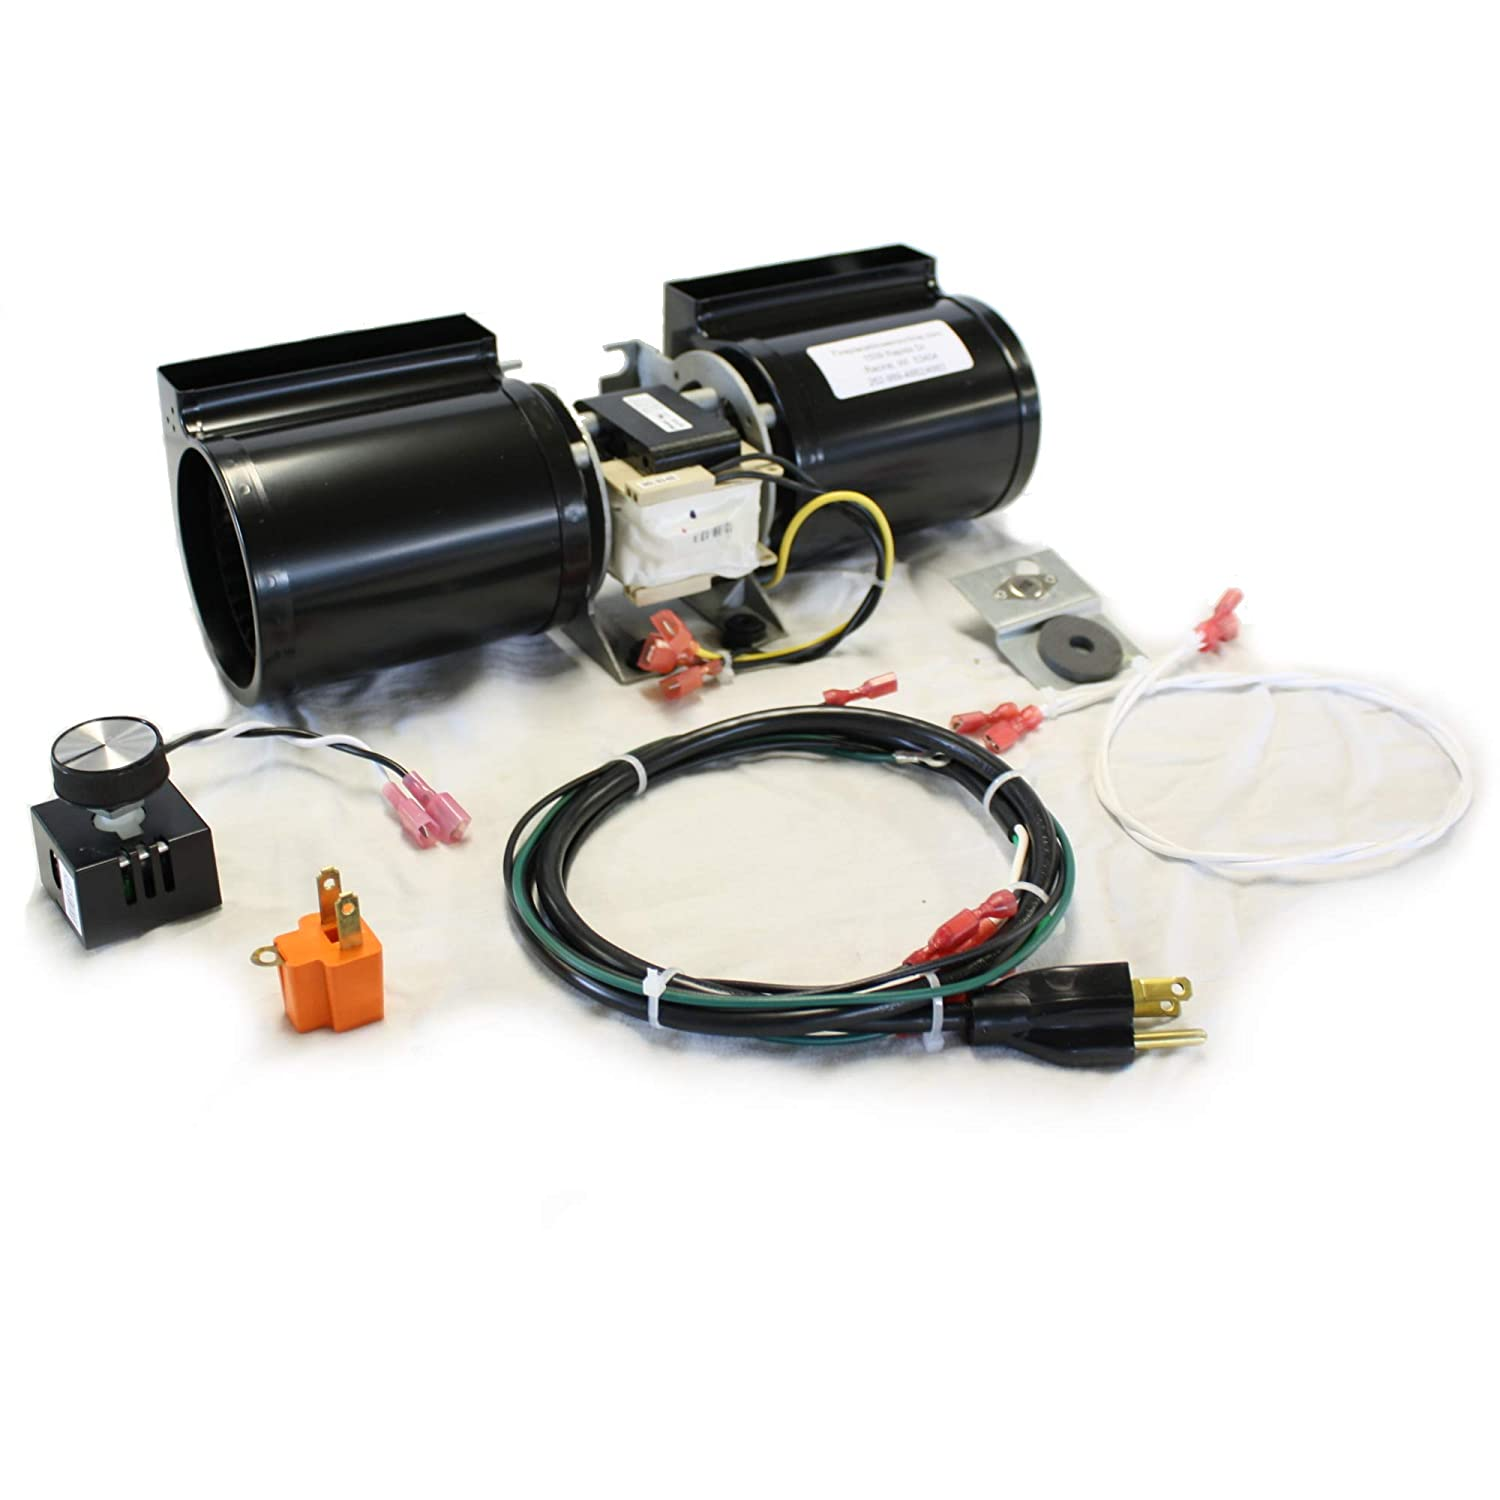 FireplaceBlowersOnline GFK-160 Fireplace Blower Kit for Heat N Glo, on